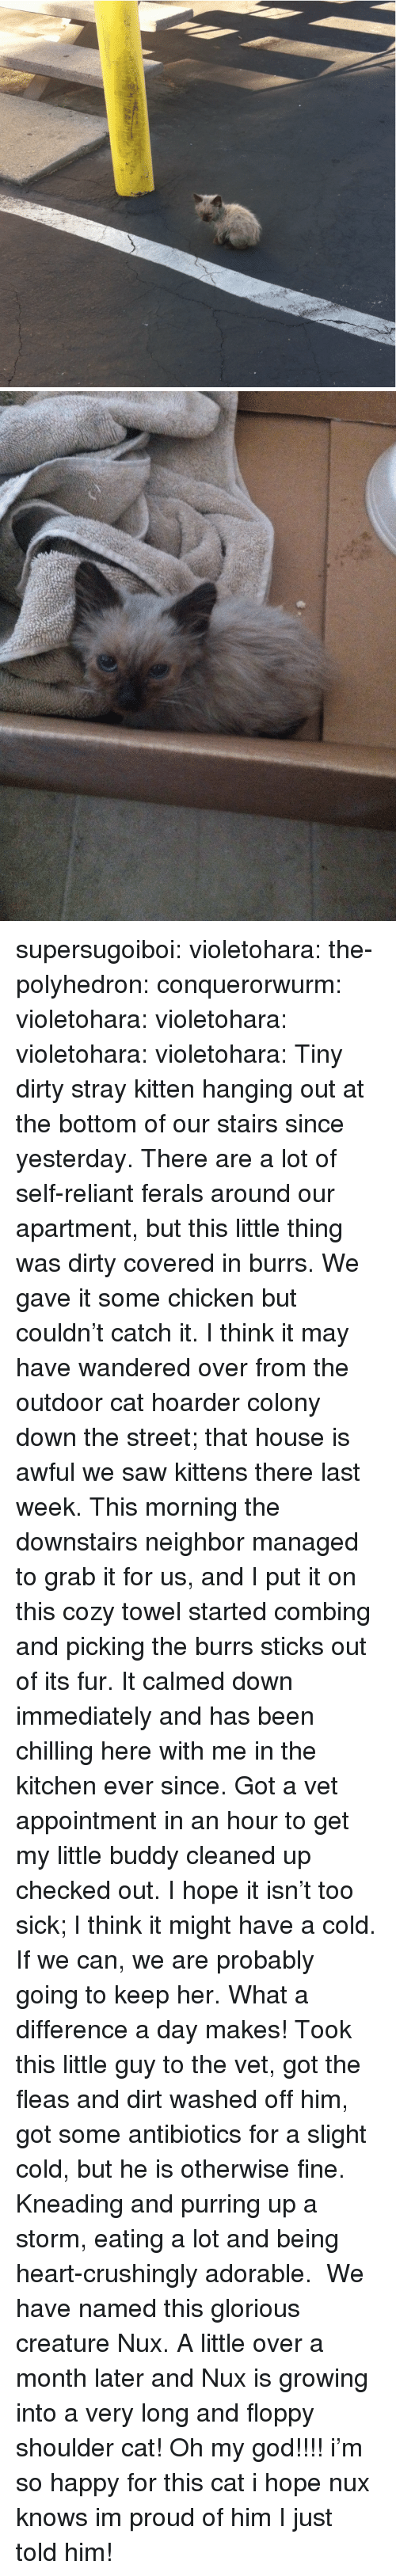 God, Oh My God, and Saw: supersugoiboi:  violetohara:  the-polyhedron:  conquerorwurm:  violetohara:   violetohara:   violetohara:   violetohara:   Tiny dirty stray kitten hanging out at the bottom of our stairs since yesterday. There are a lot of self-reliant ferals around our apartment, but this little thing was dirty  covered in burrs. We gave it some chicken but couldn't catch it. I think it may have wandered over from the outdoor cat hoarder colony down the street; that house is awful  we saw kittens there last week.  This morning the downstairs neighbor managed to grab it for us, and I put it on this cozy towel  started combing and picking the burrs  sticks out of its fur. It calmed down immediately and has been chilling here with me in the kitchen ever since. Got a vet appointment in an hour to get my little buddy cleaned up  checked out. I hope it isn't too sick; I think it might have a cold.  If we can, we are probably going to keep her.   What a difference a day makes! Took this little guy to the vet, got the fleas and dirt washed off him, got some antibiotics for a slight cold, but he is otherwise fine. Kneading and purring up a storm, eating a lot and being heart-crushingly adorable.   We have named this glorious creature Nux.   A little over a month later and Nux is growing into a very long and floppy shoulder cat!   Oh my god!!!!  i'm so happy for this cat i hope nux knows im proud of him  I just told him!